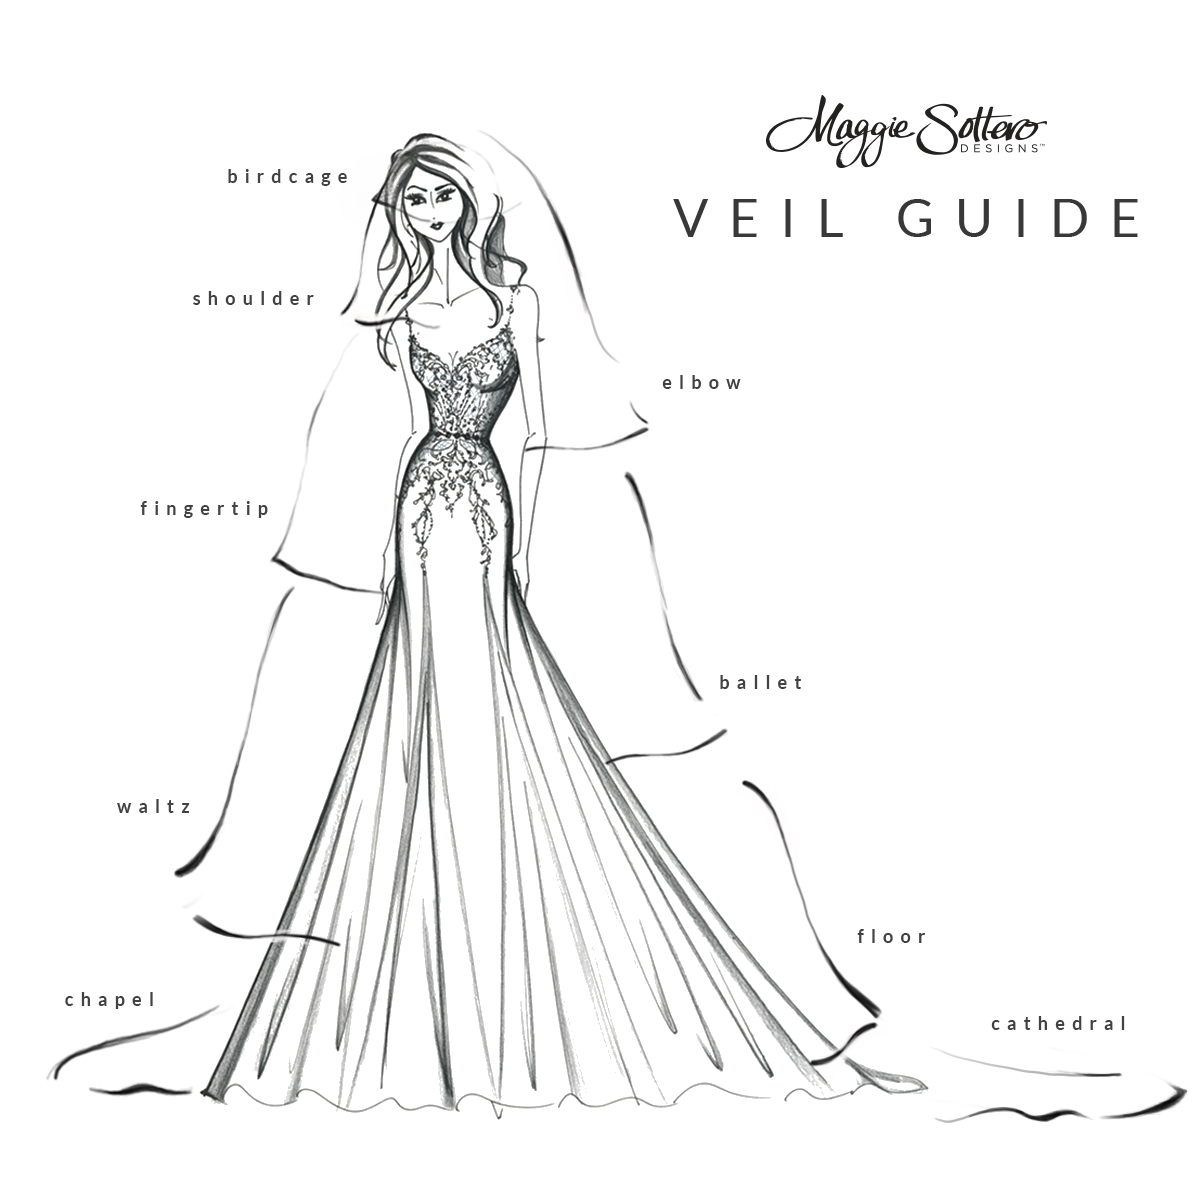 39 Stunning Wedding Veil Headpiece Ideas For Your 2016: Veiled Intentions: Picking A Perfect Veil